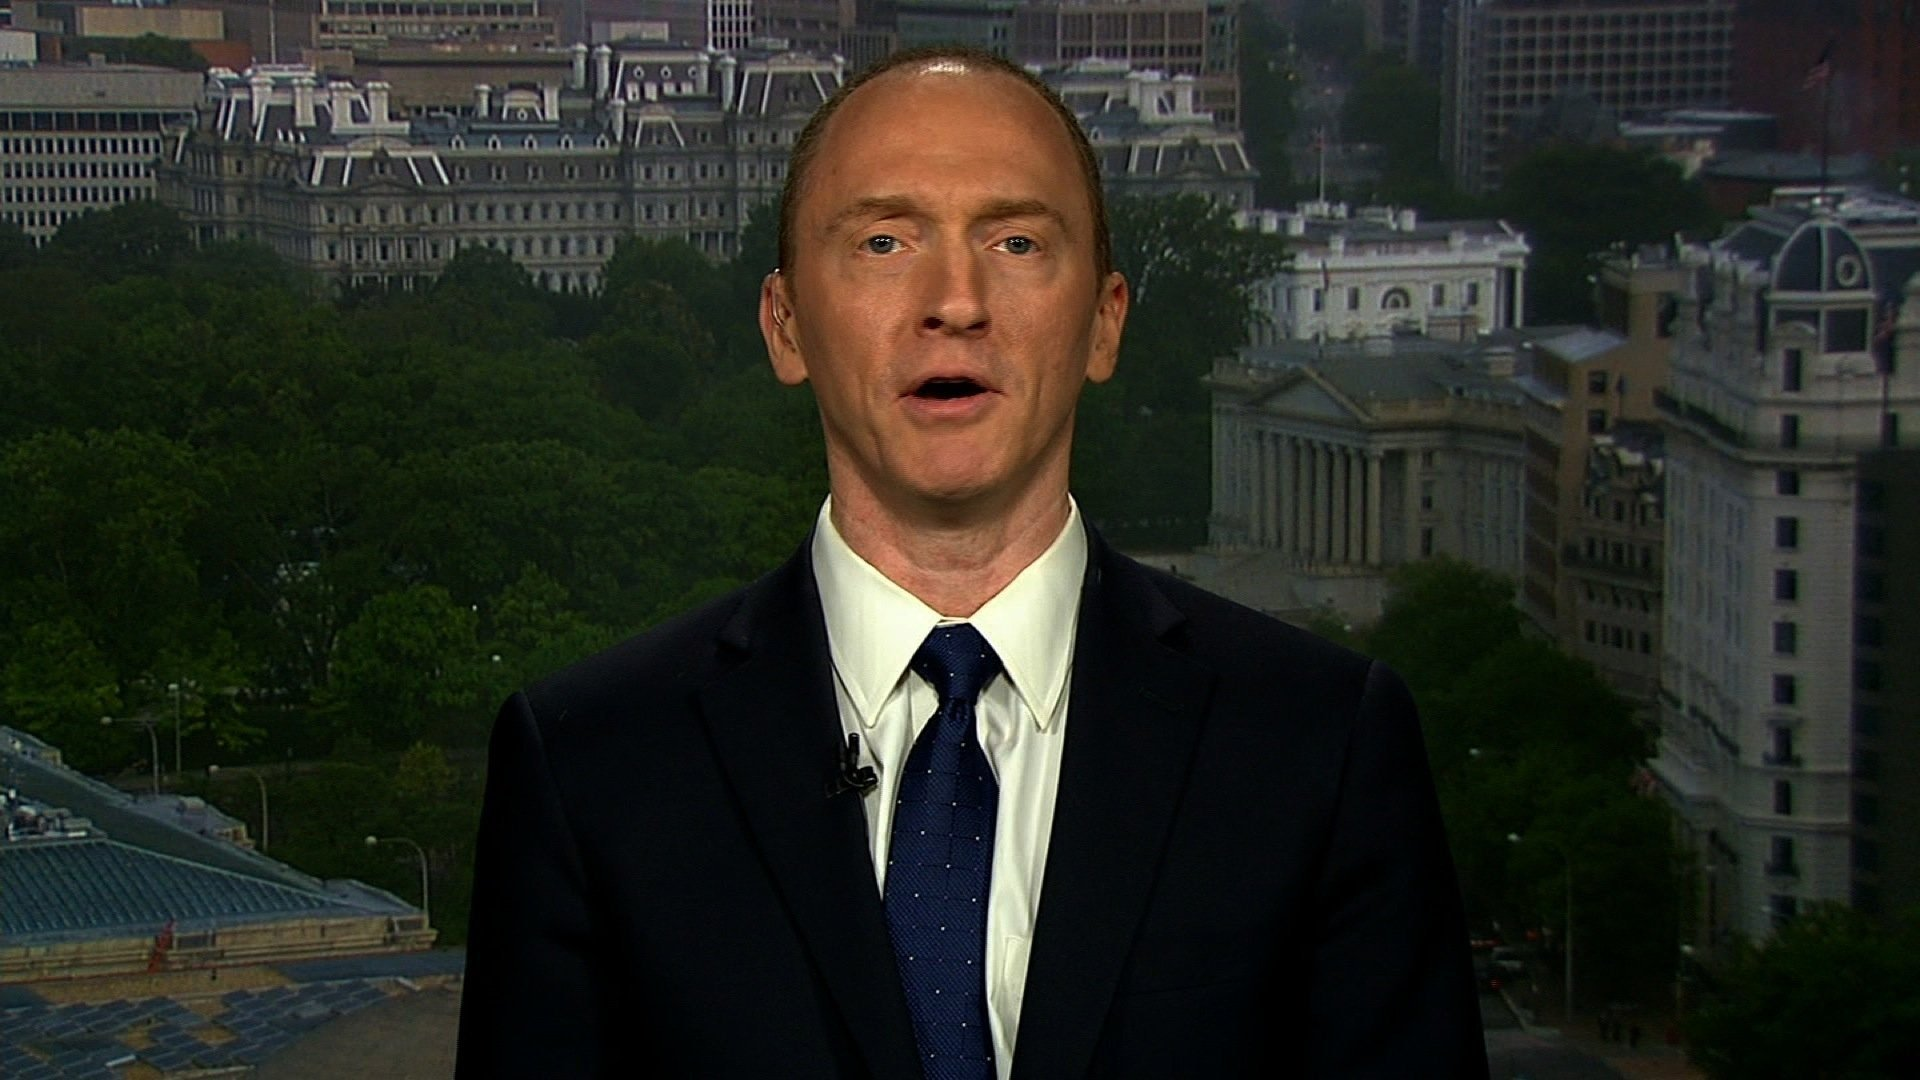 Ex-Trump aide Carter Page refusing to cooperate in Russian Federation investigation